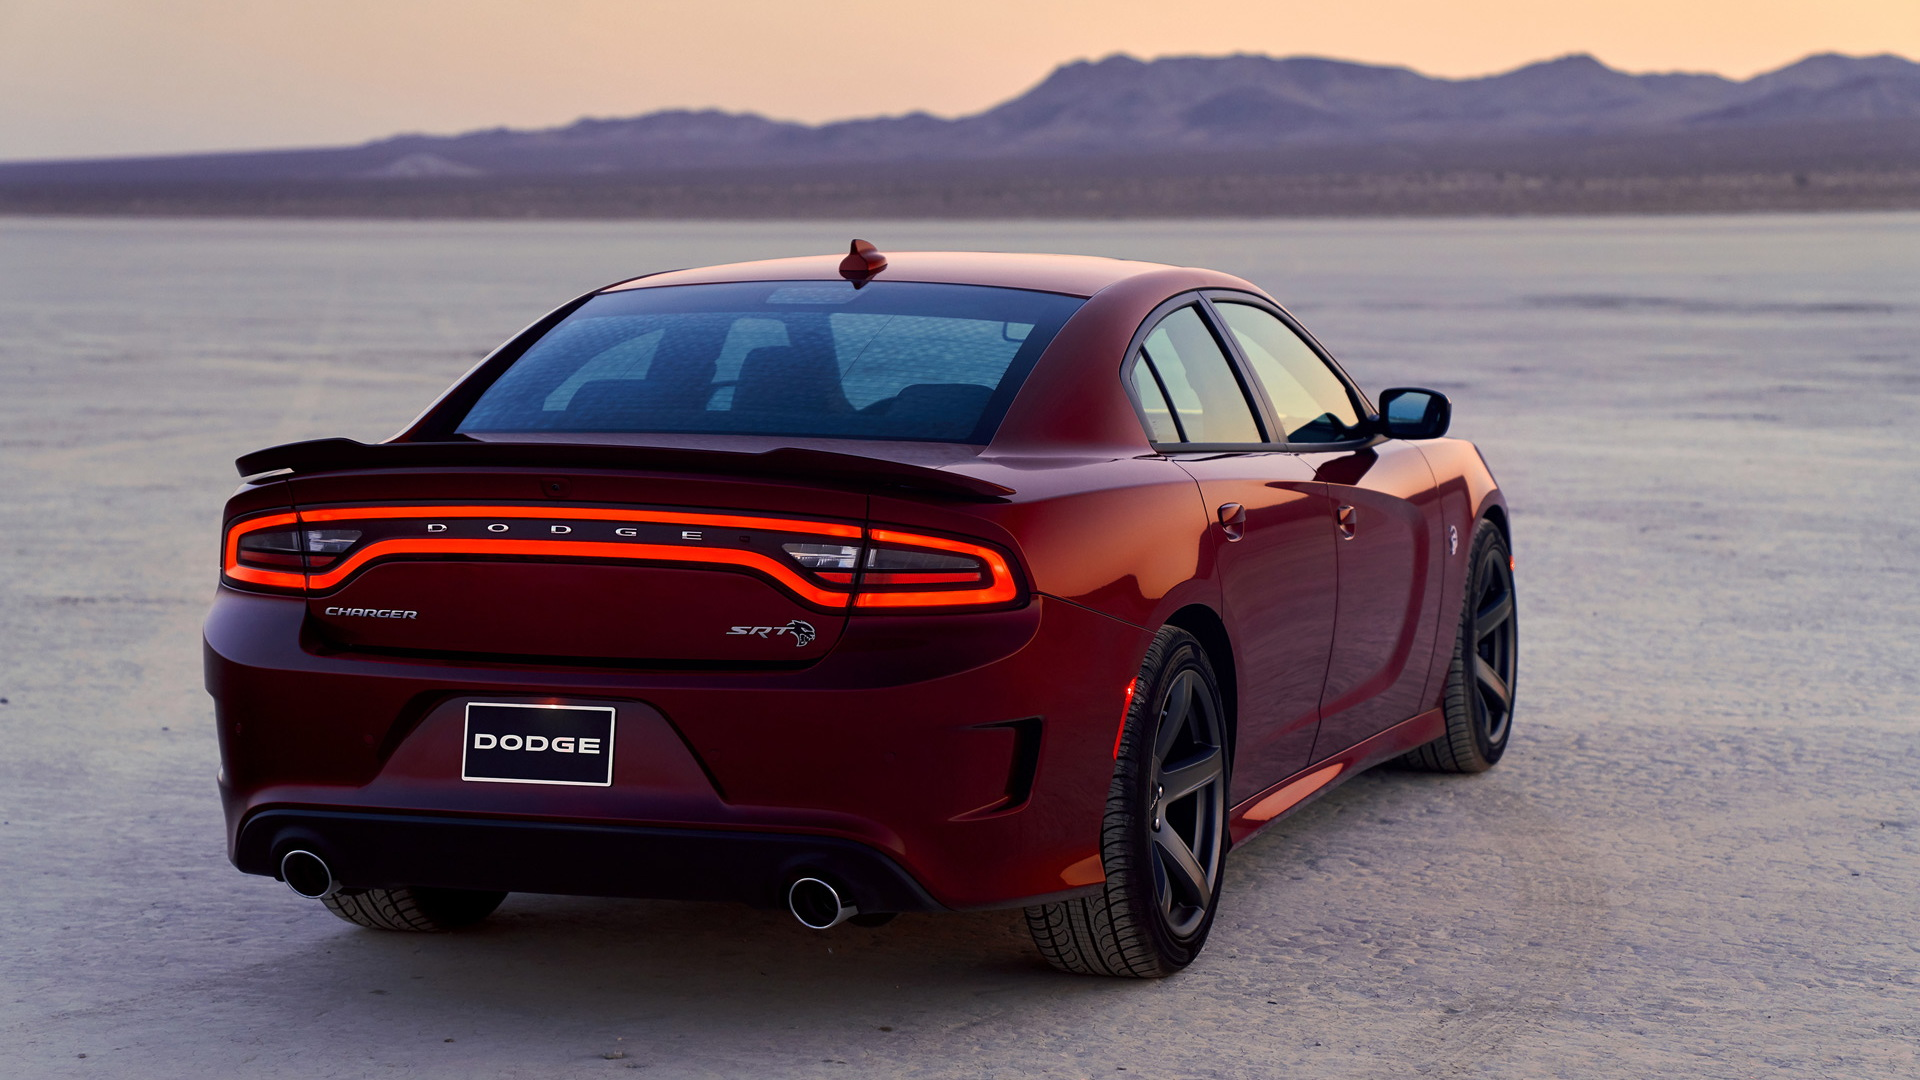 2019 Dodge Charger Srt Hellcat Gets Revised Look Demon Tech